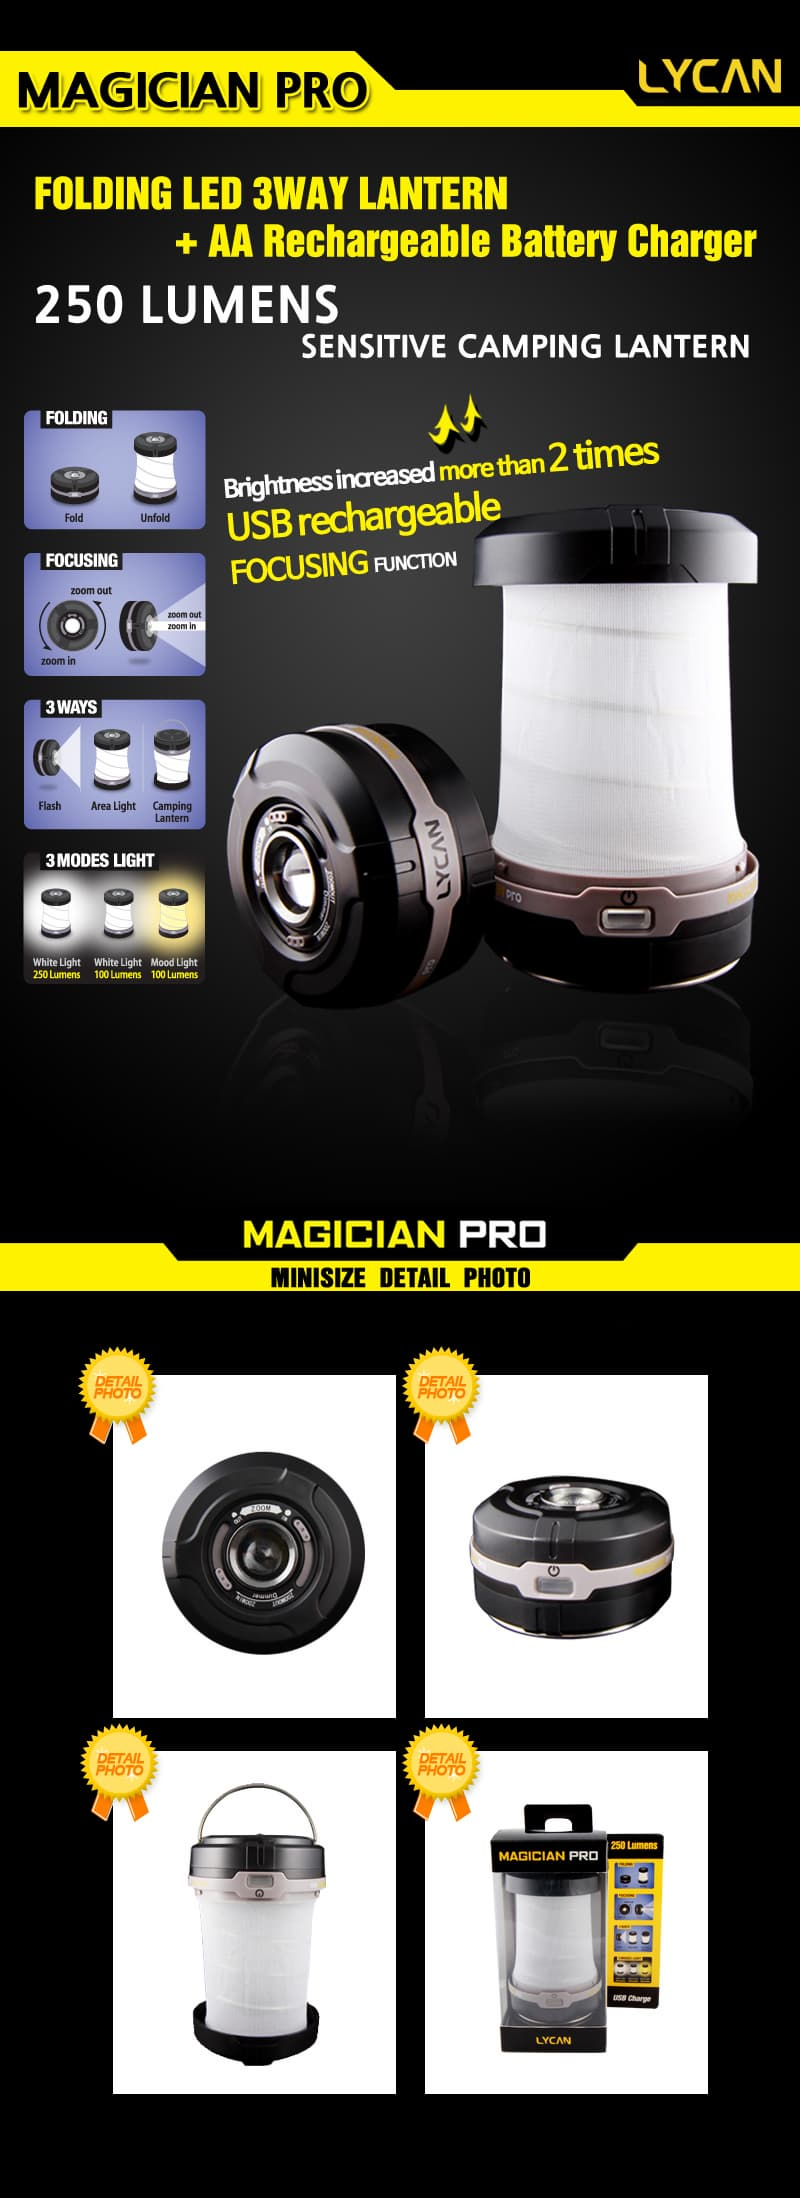 Magician Pro Specification and Brightness